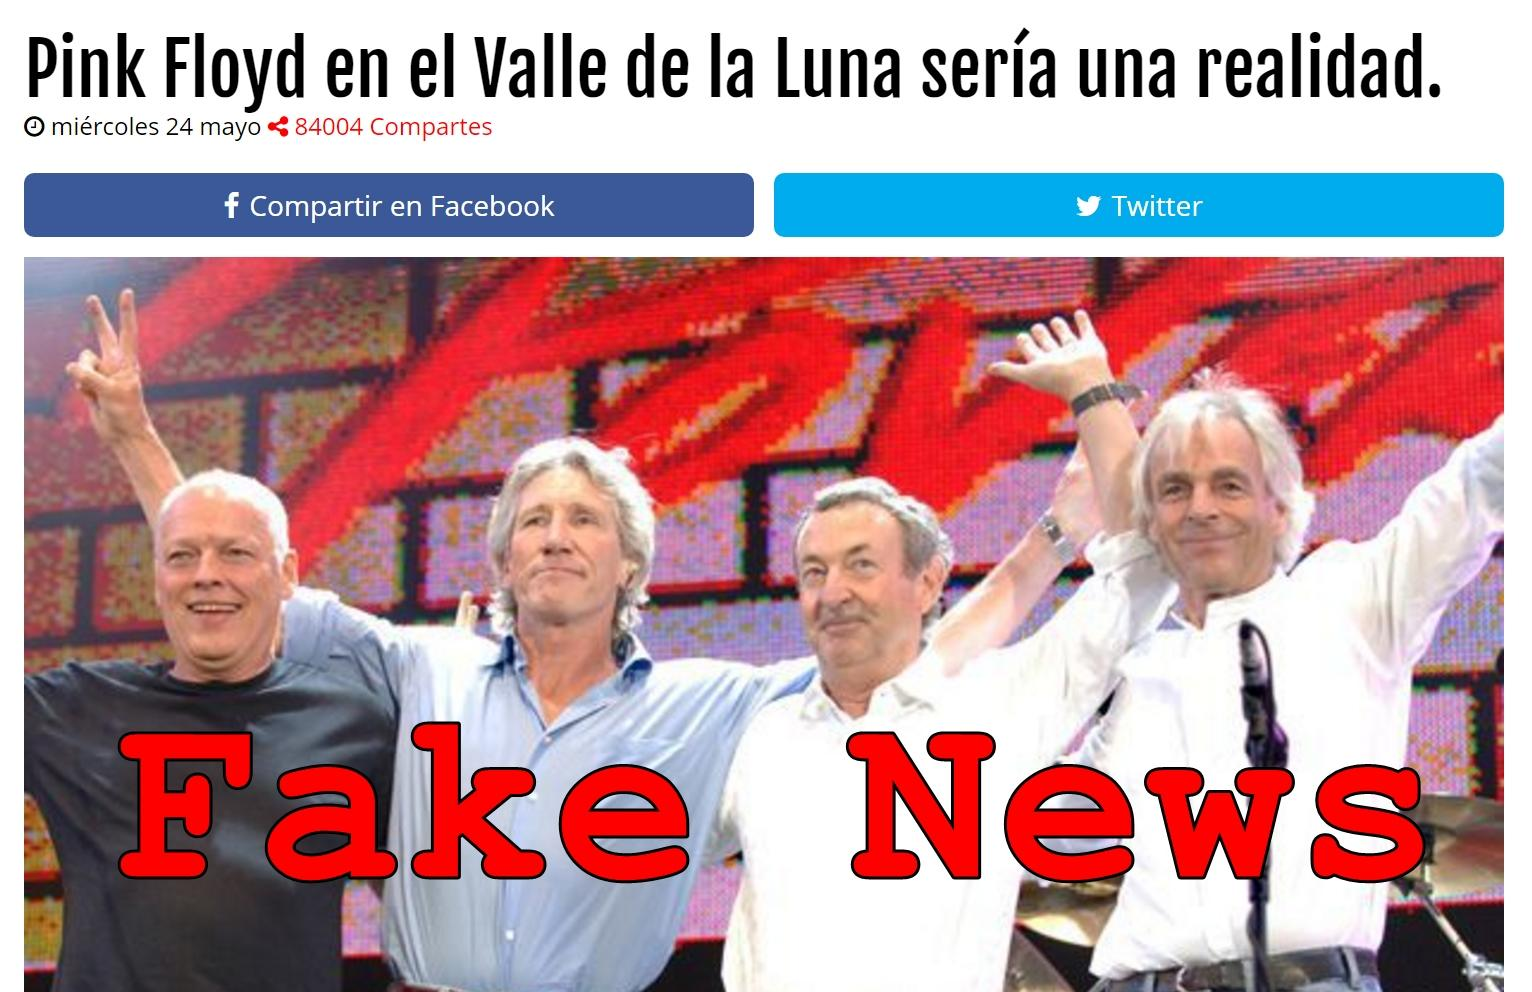 Fake News: Pink Floyd NOT To Perform at Valle de la Luna